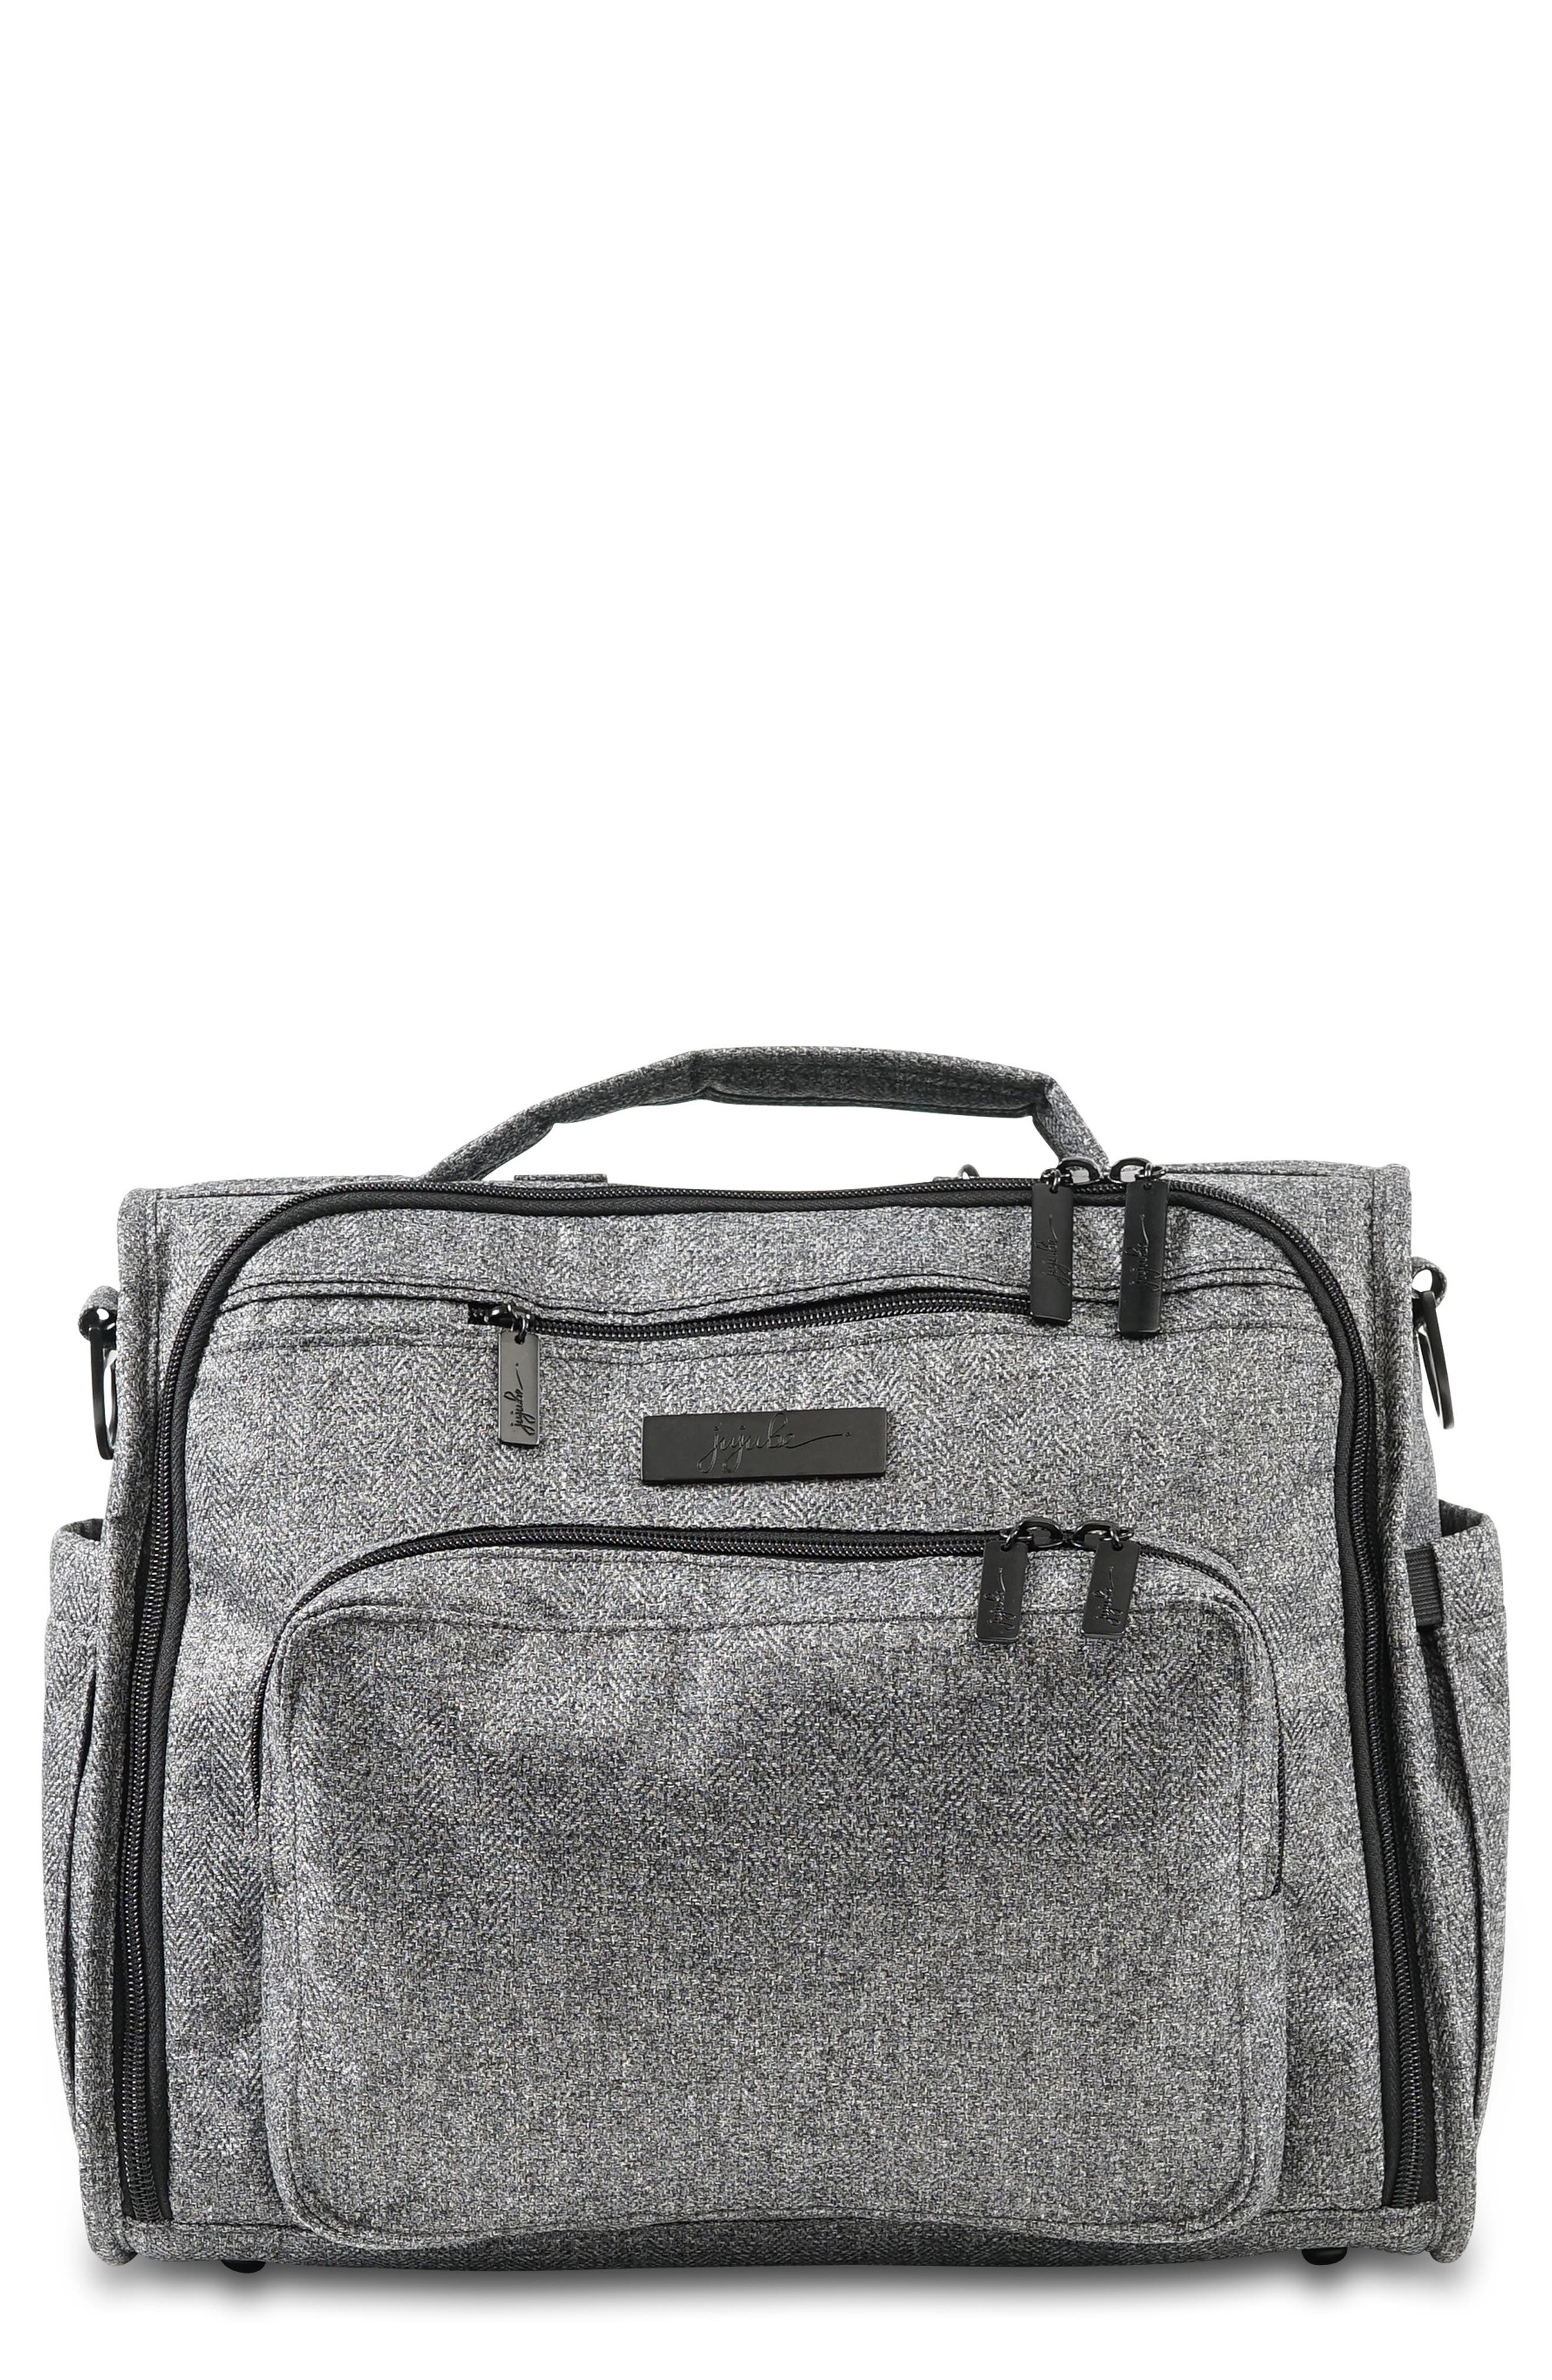 'BFF - Onyx Collection' Diaper Bag,                             Main thumbnail 1, color,                             GRAY MATTER